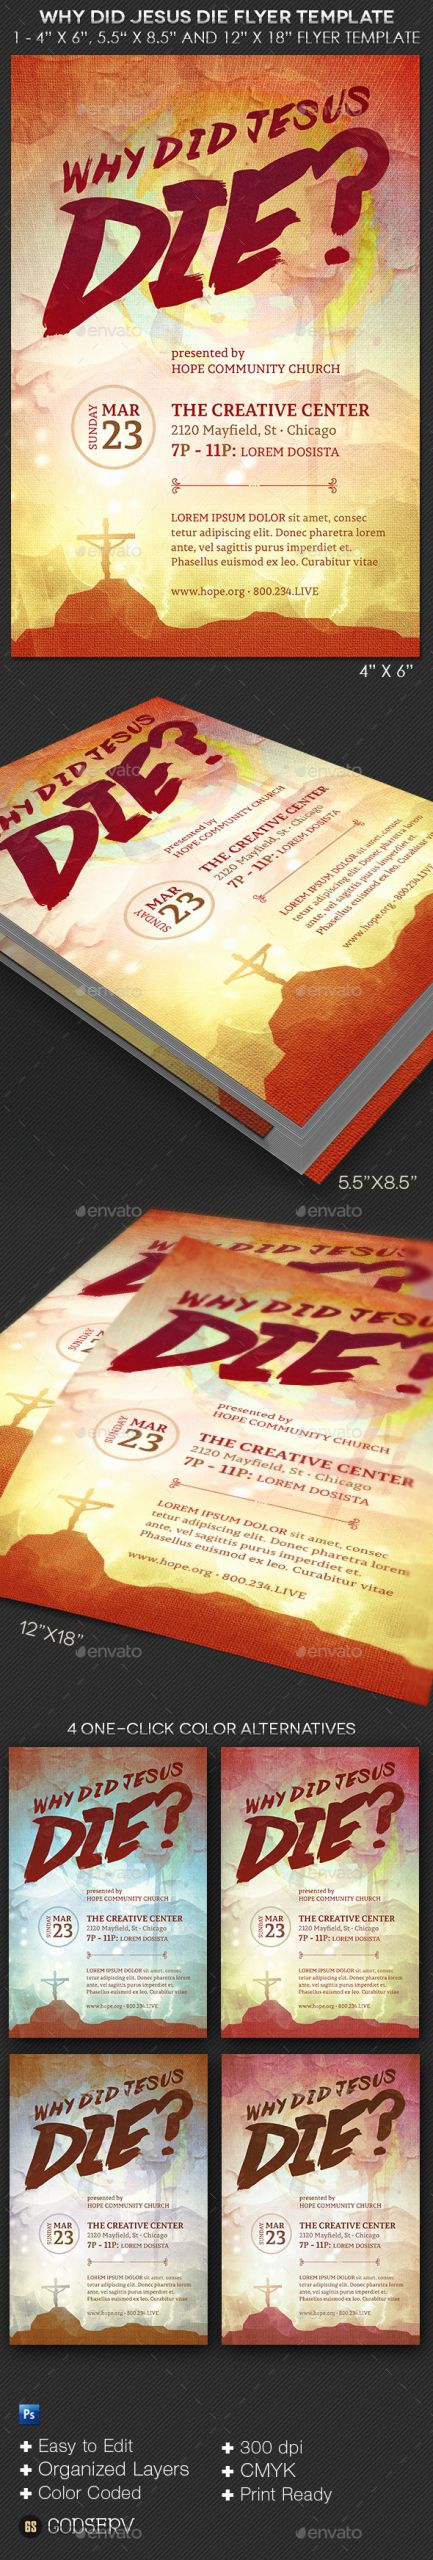 Bible Study Invitation Template Best Of why Did Jesus Die Church Flyer Template